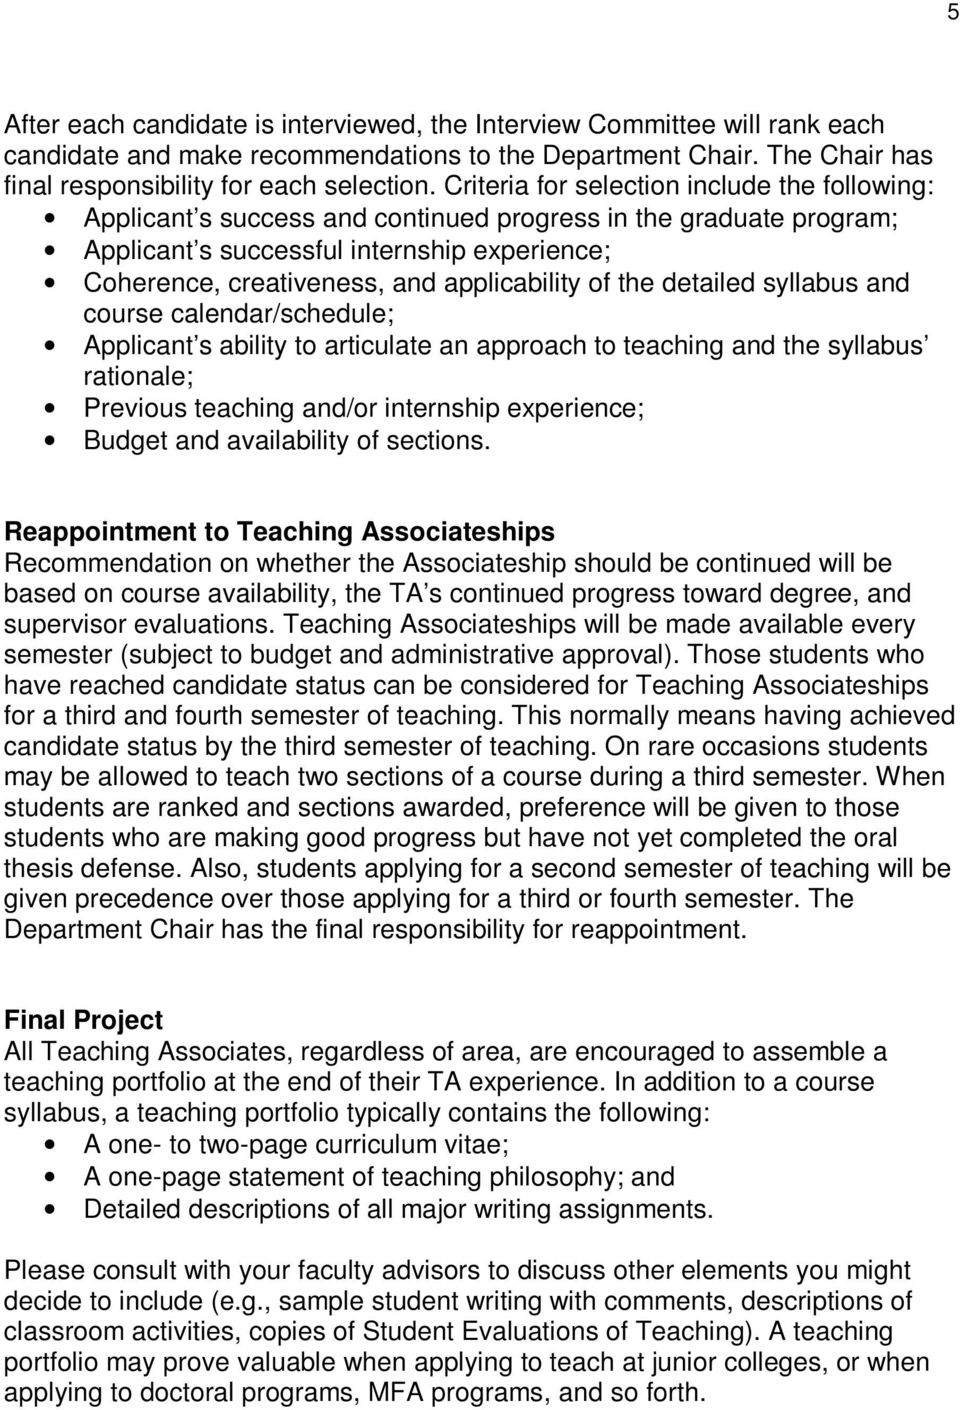 applicability of the detailed syllabus and course calendar/schedule; Applicant s ability to articulate an approach to teaching and the syllabus rationale; Previous teaching and/or internship